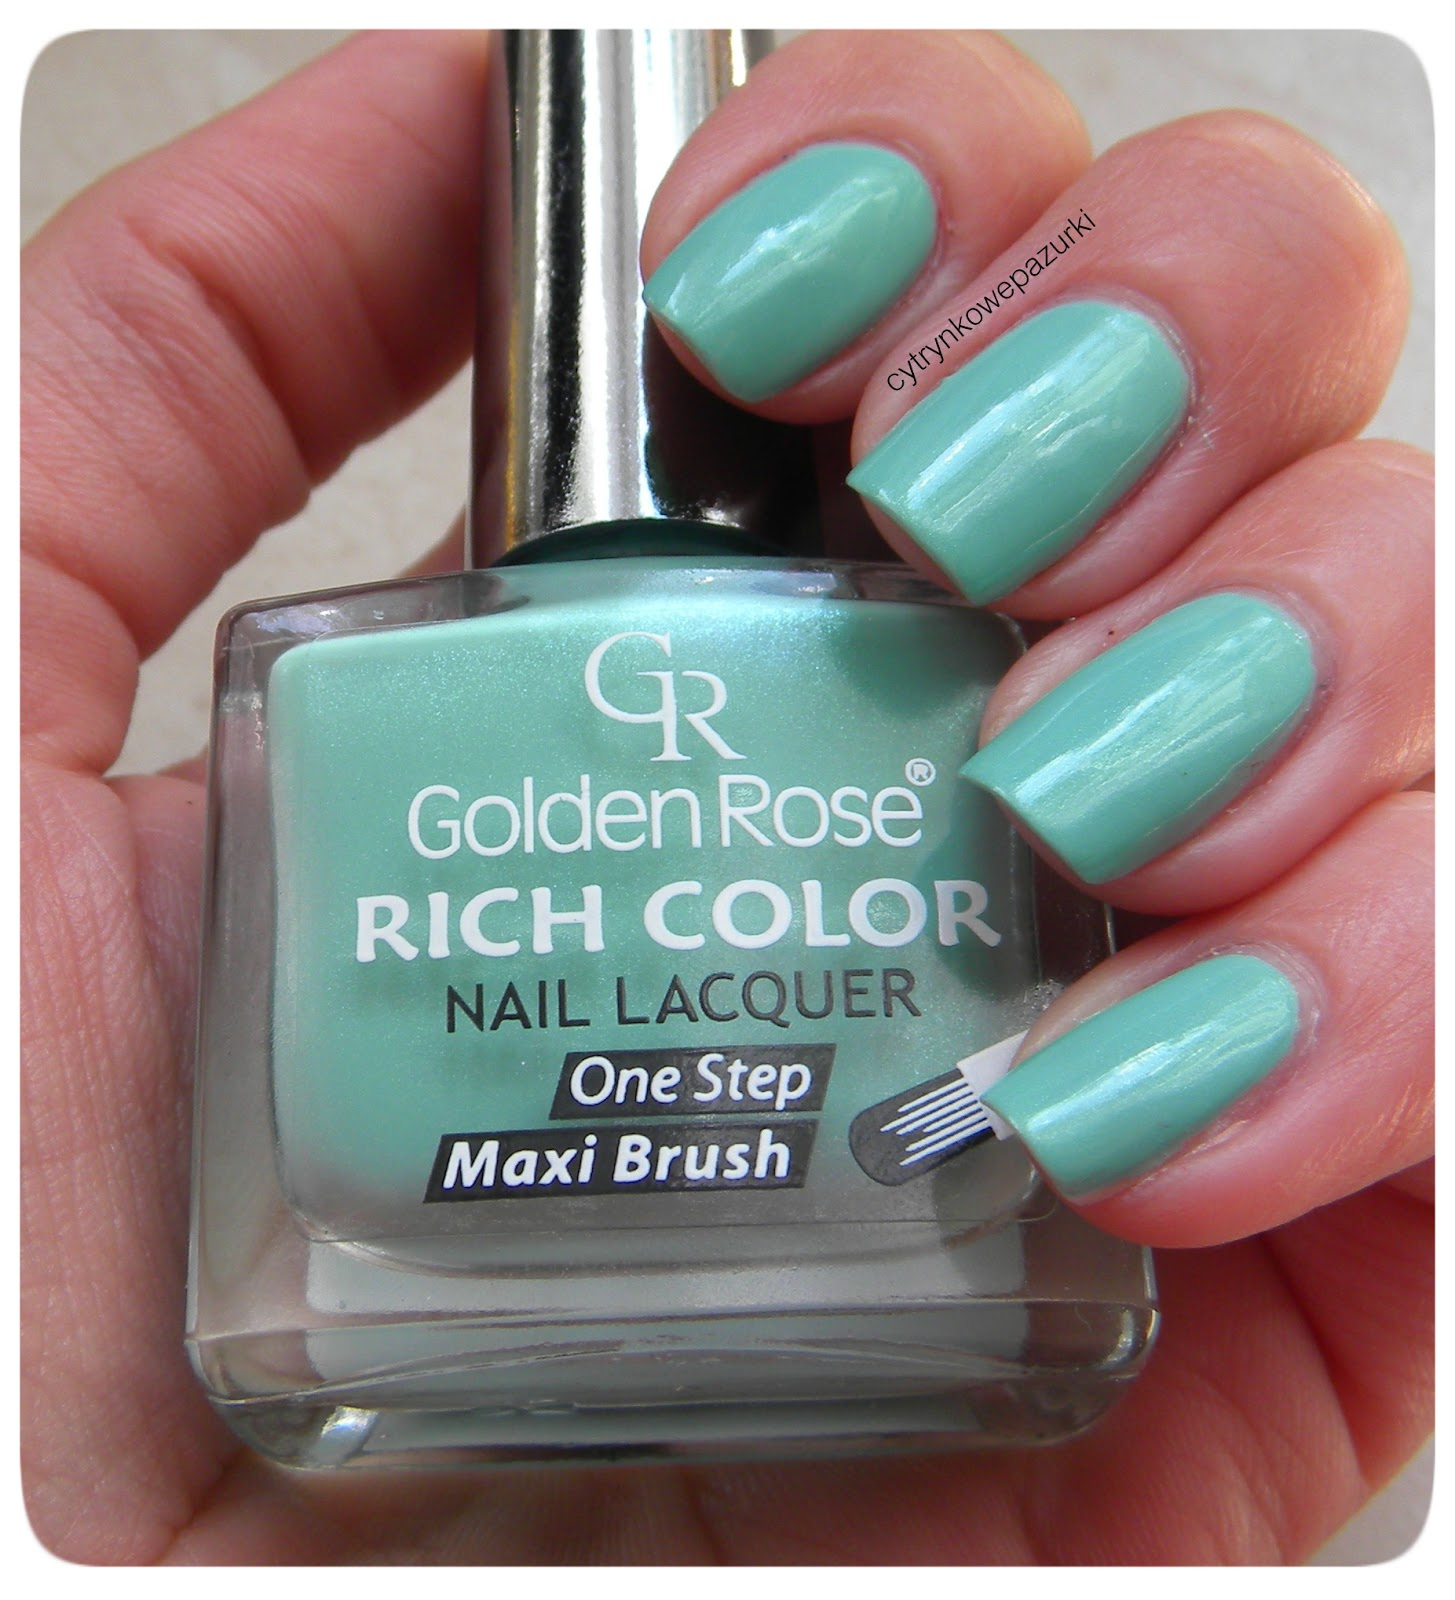 Golden Rose Rich Color 65 nowy kolor